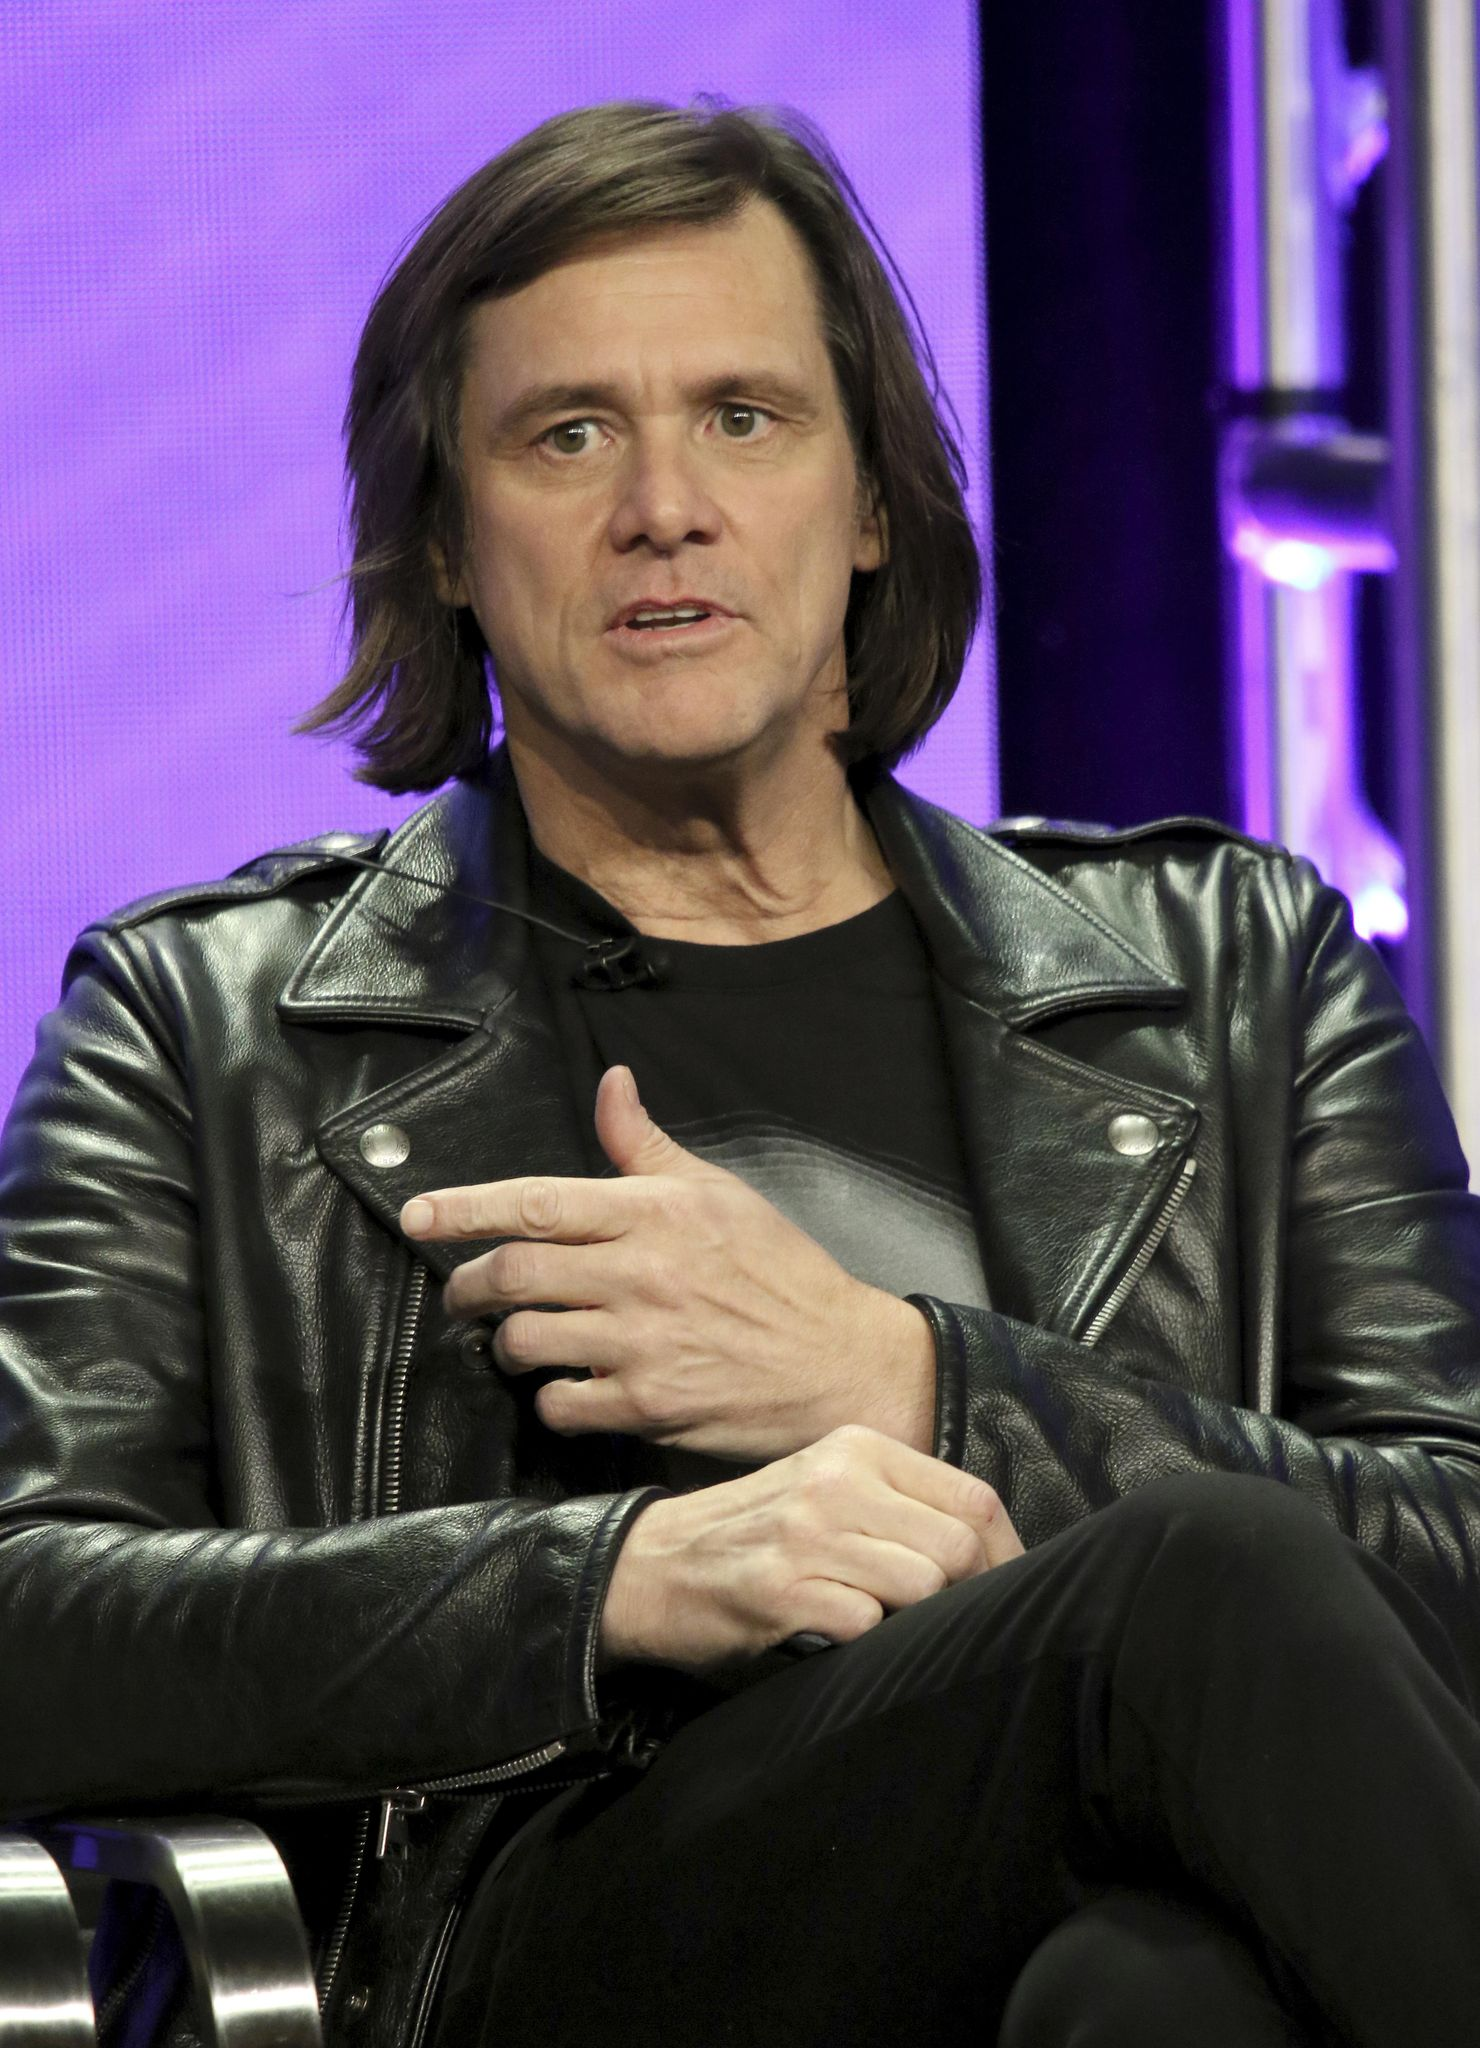 Jim Carrey rage pivots from Trump to 'Christian right,' says it's 'never been about morality'